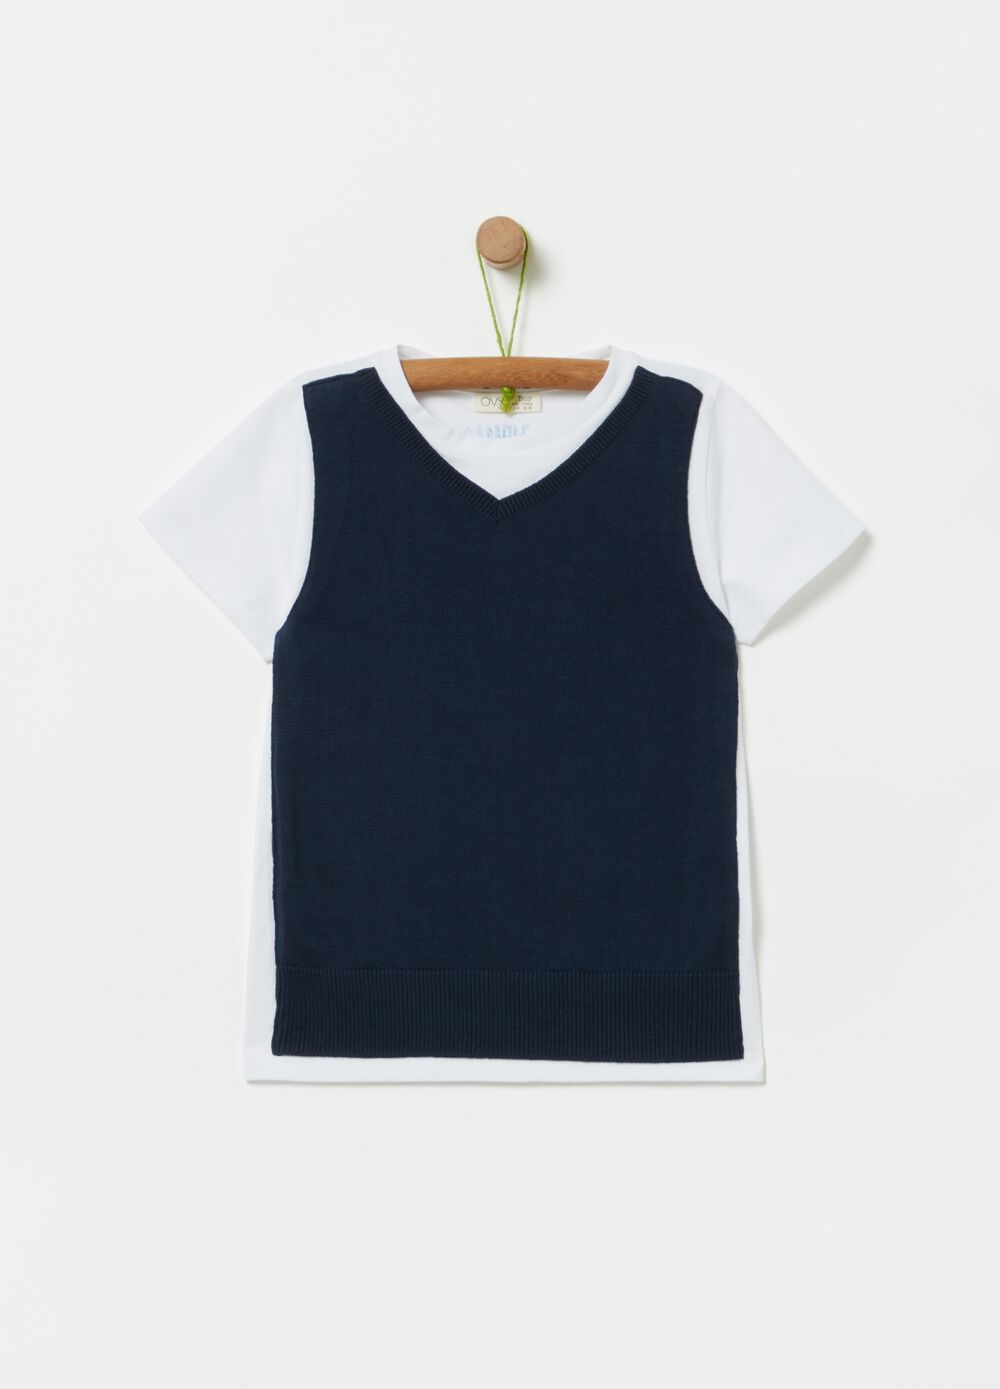 100% organic cotton T-shirt with gilet